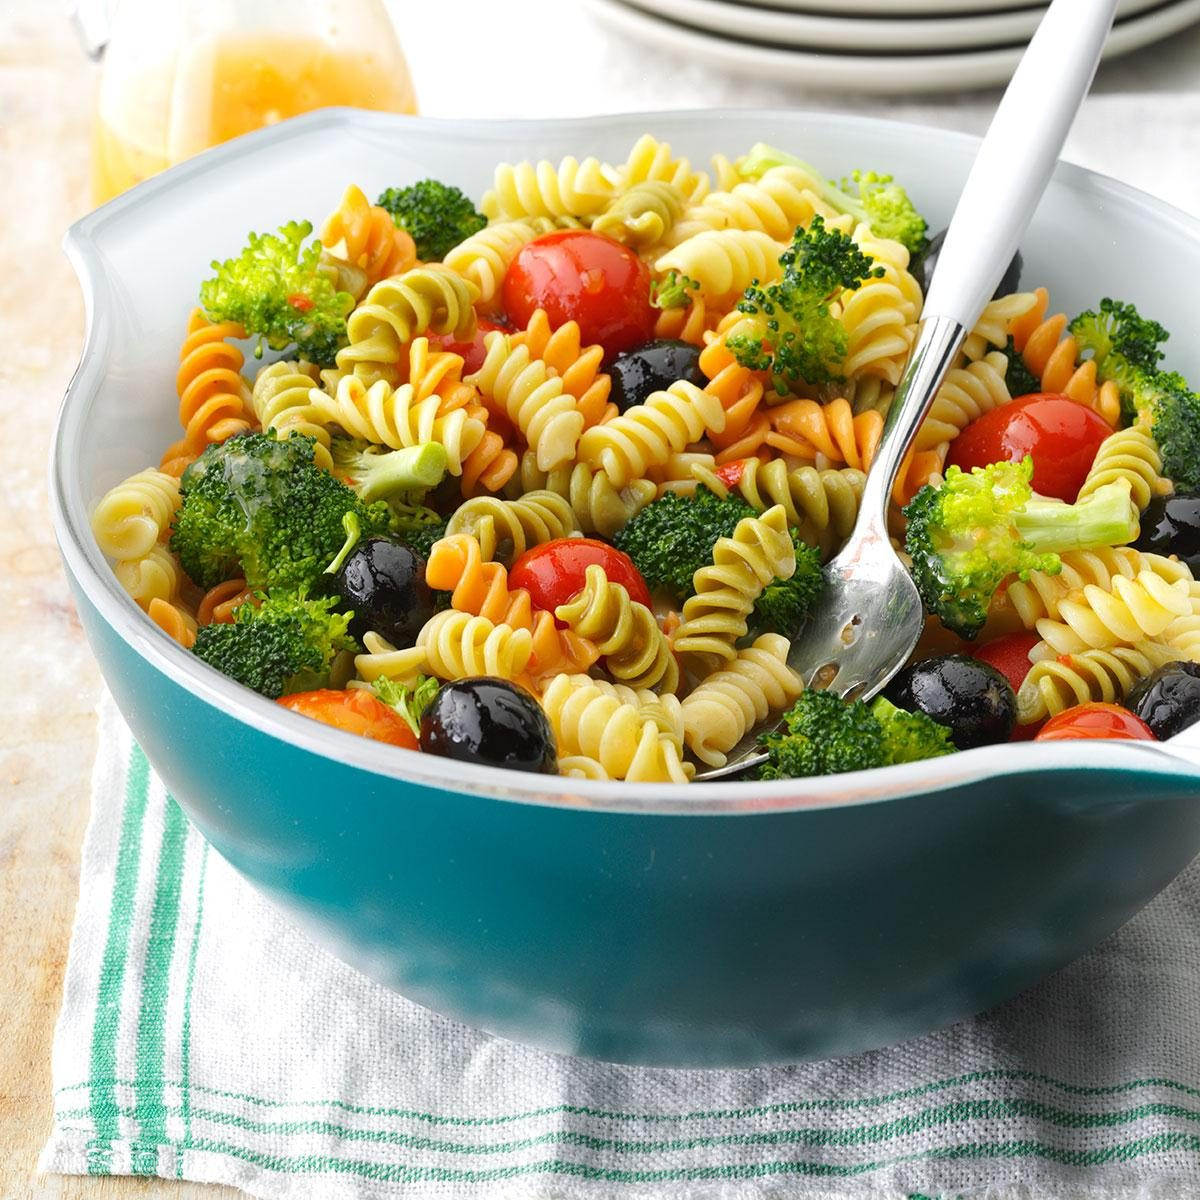 Tri-color pasta salad recipe